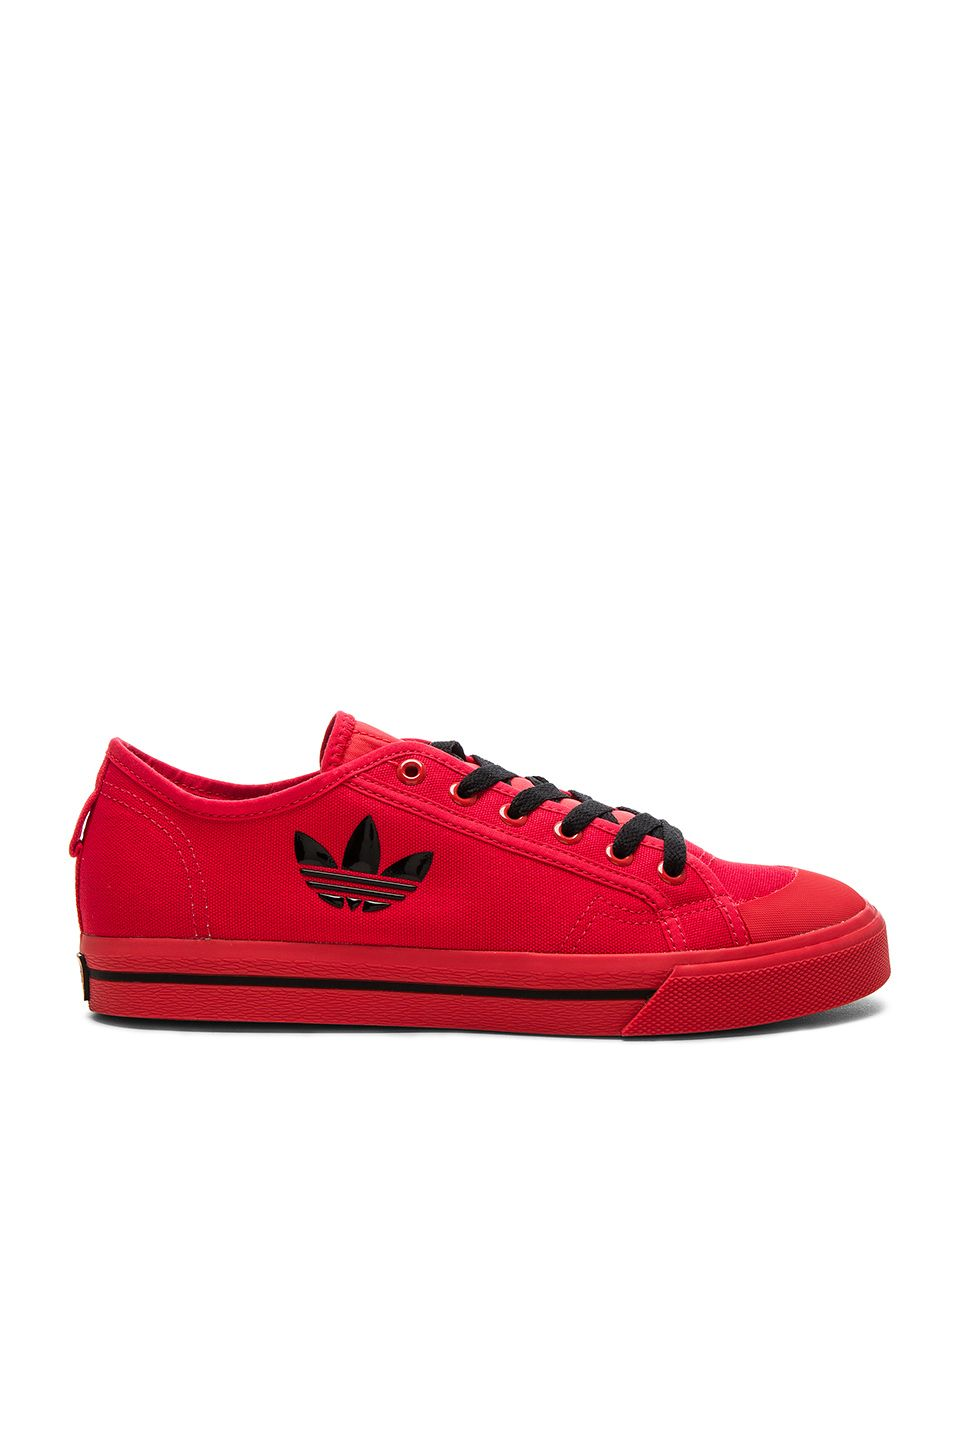 6d05bc2164160 ADIDAS BY RAF SIMONS RS MATRIX SPIRIT LOW TOP.  adidasbyrafsimons  shoes